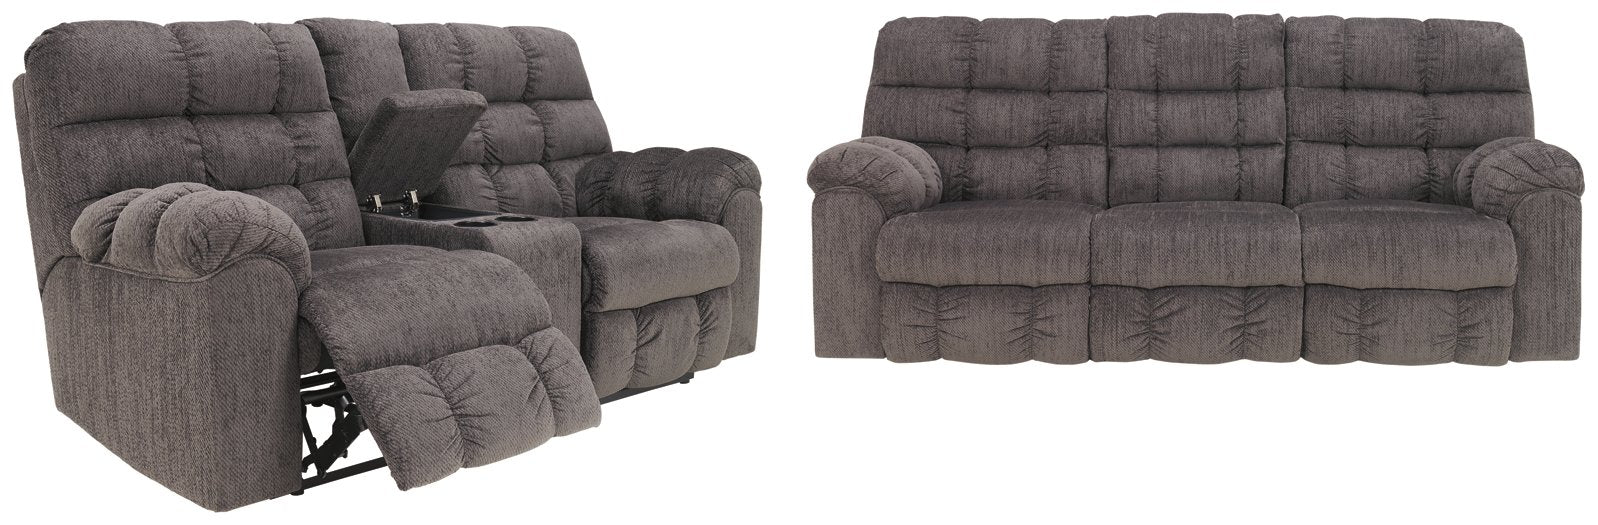 Acieona Signature Design 2-Piece Living Room Set